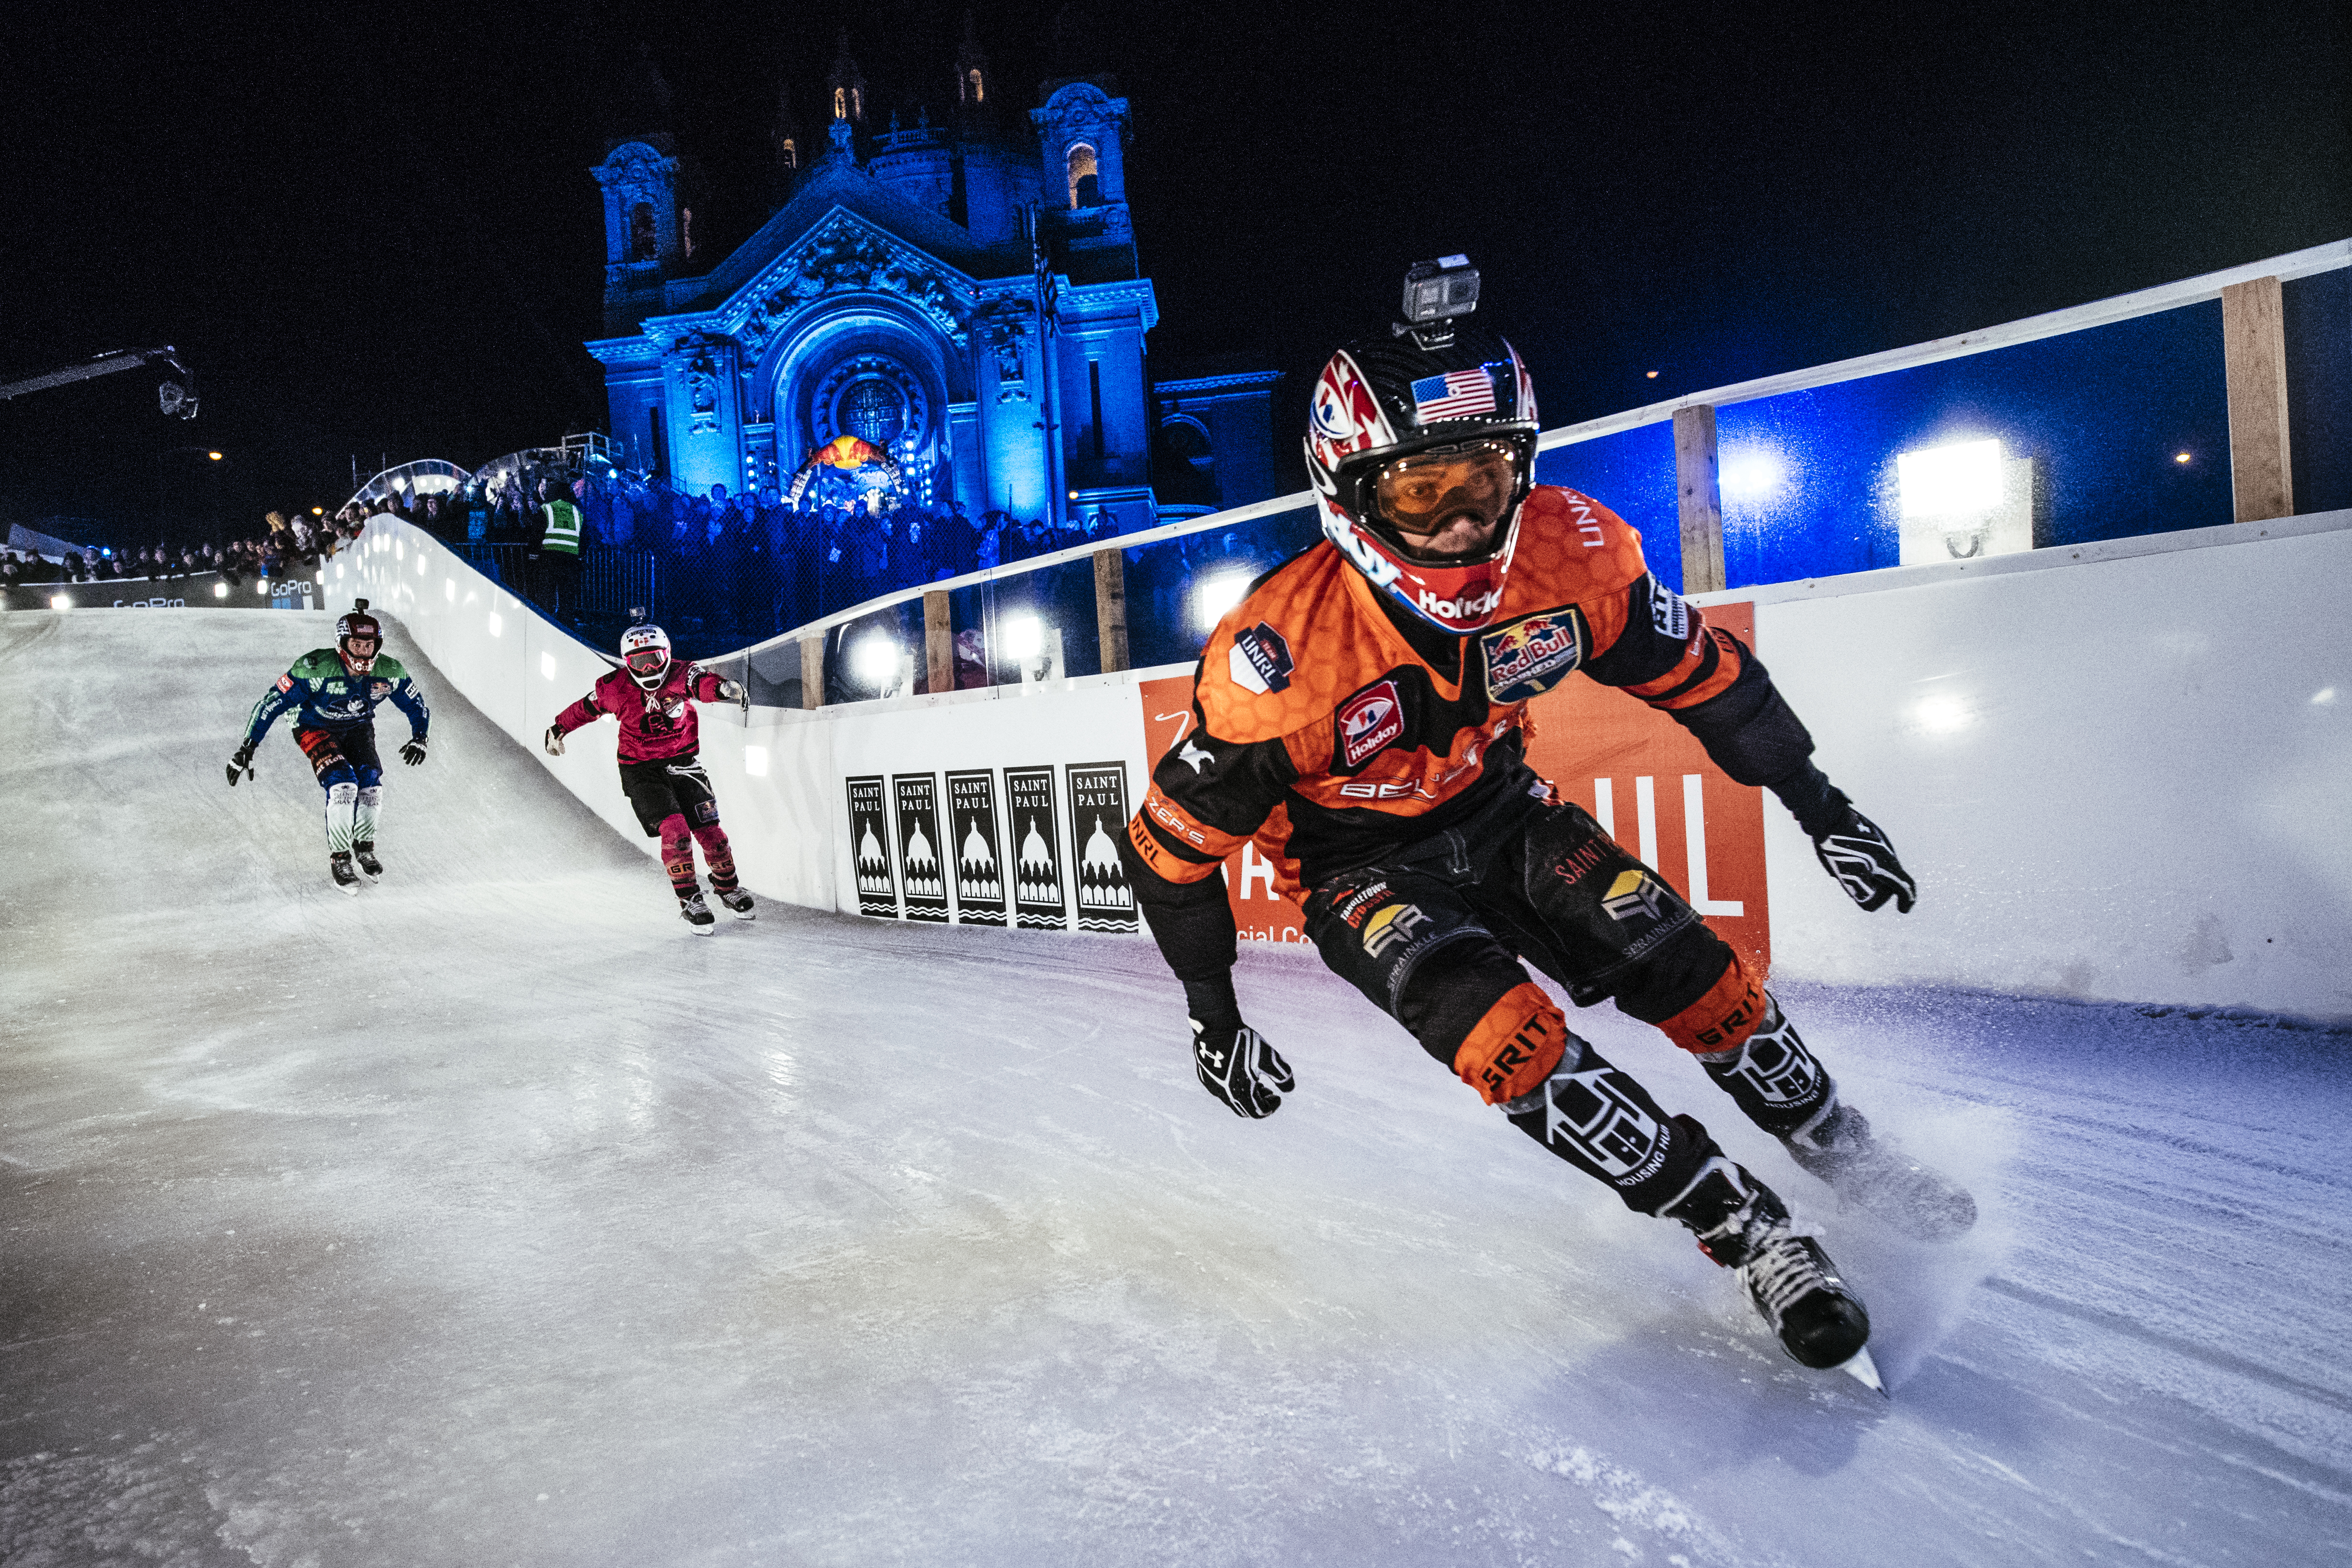 Crashed Ice competitors